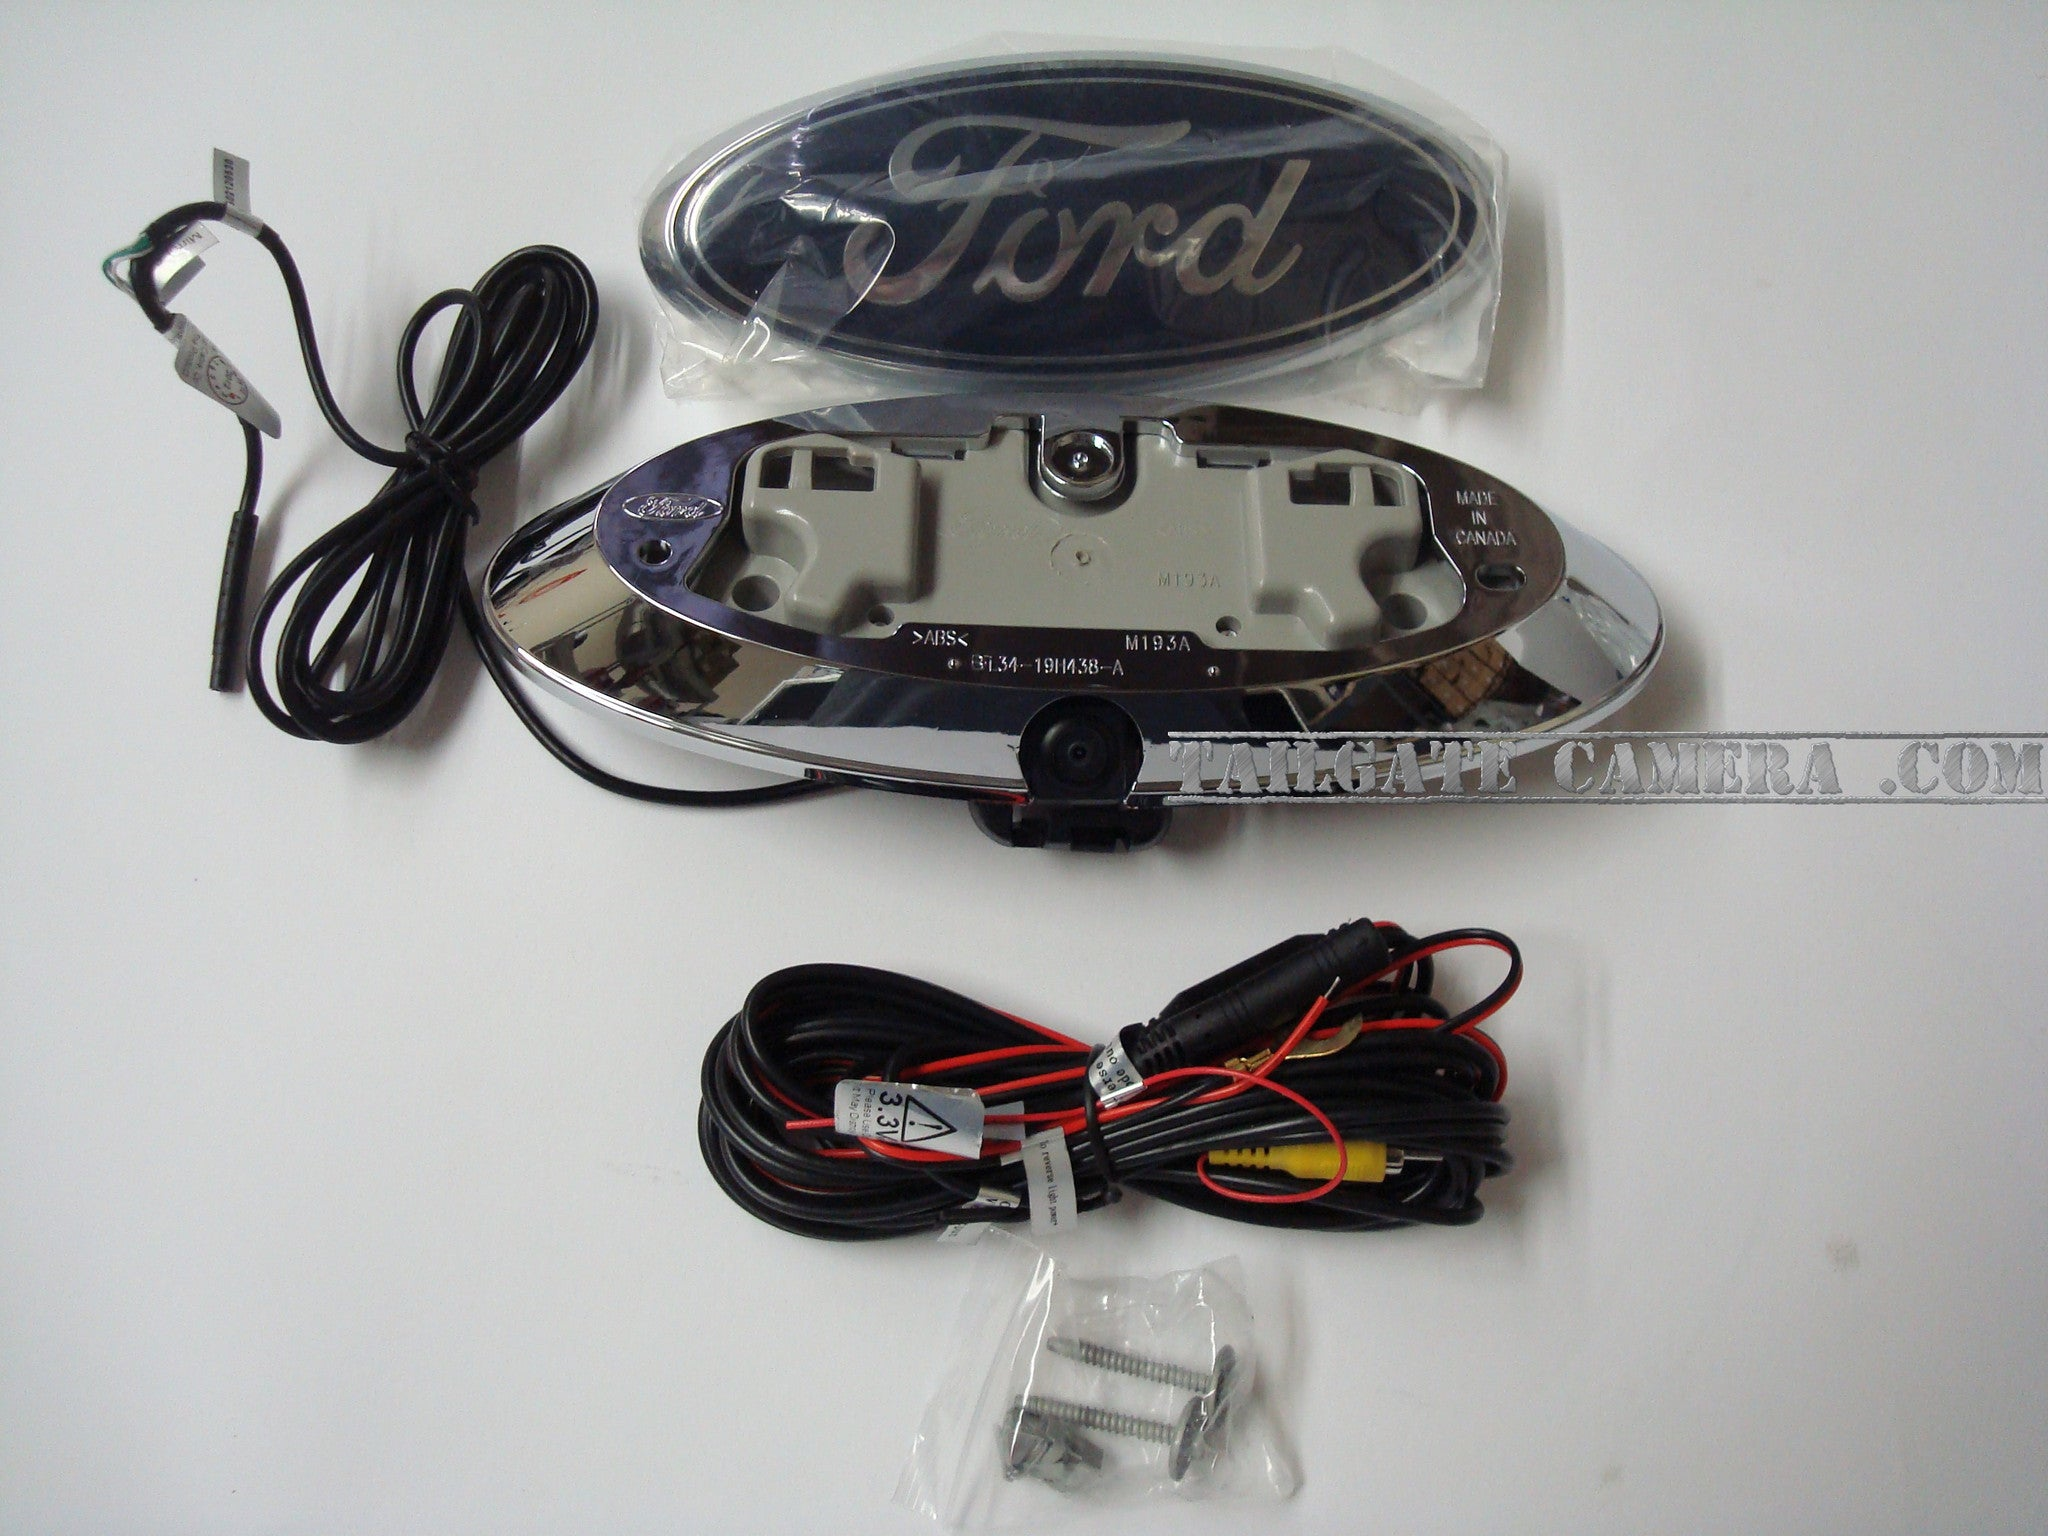 dsc1492?v=1361385570 ford,f150,tailgate,emblem,camera,ford,f250,tailgate,camera,f350 2012 Ford F350 Fuse Diagram at gsmportal.co